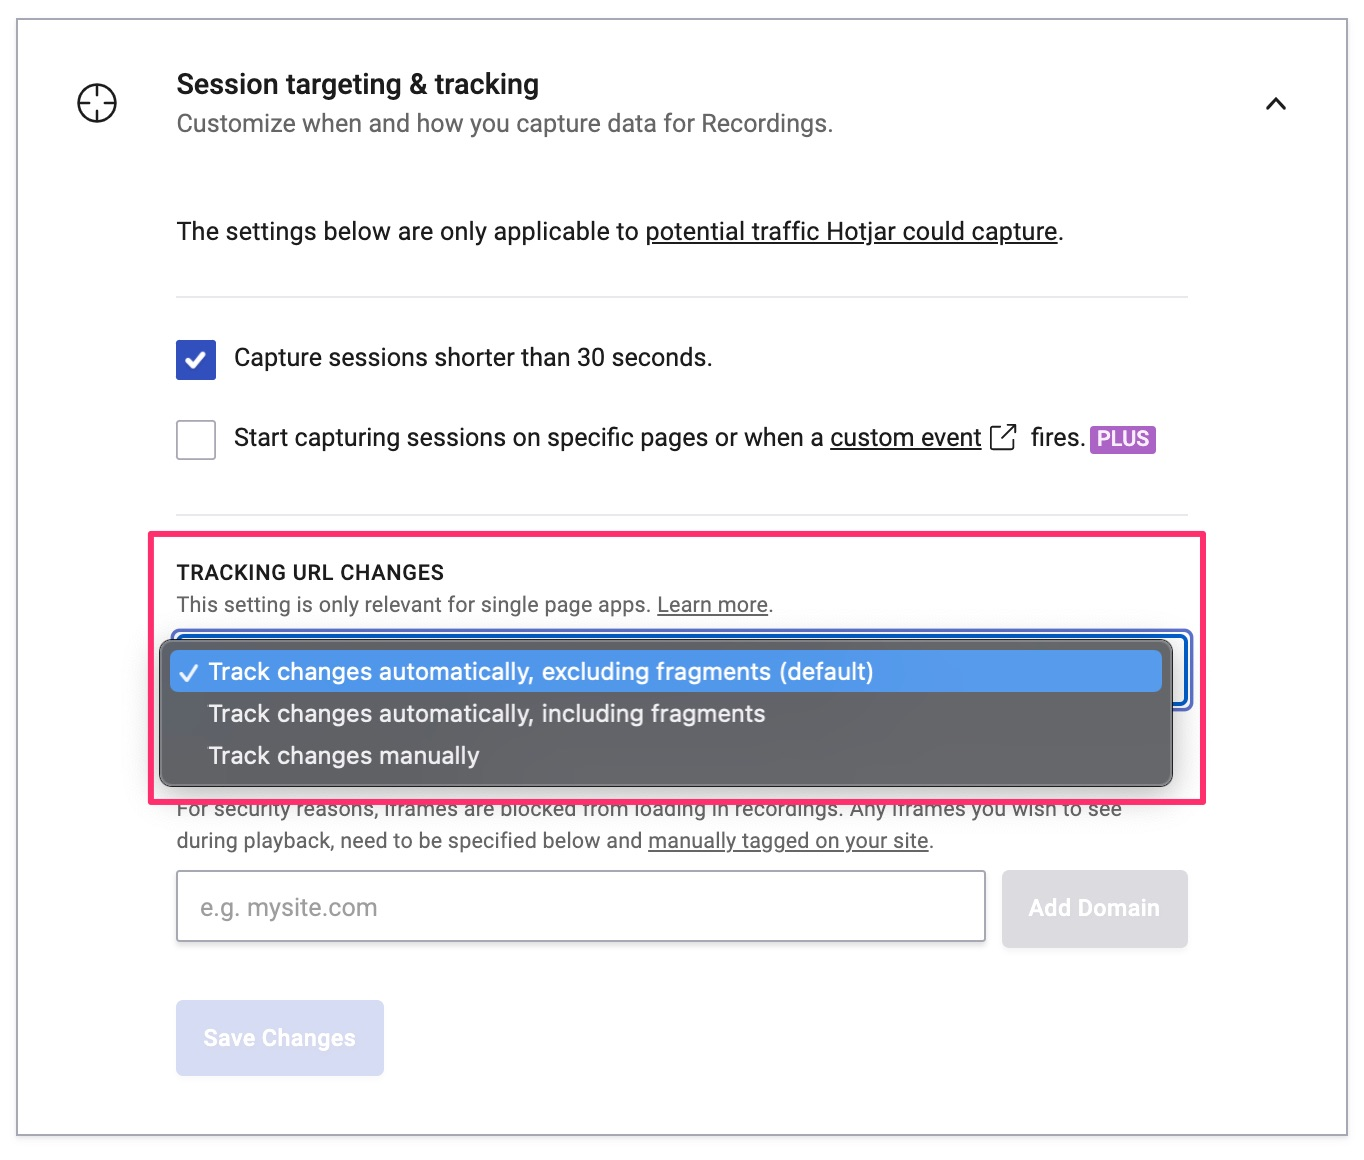 These settings are available in Sites and Organizations by clicking on the Site settings button next to a site's name.